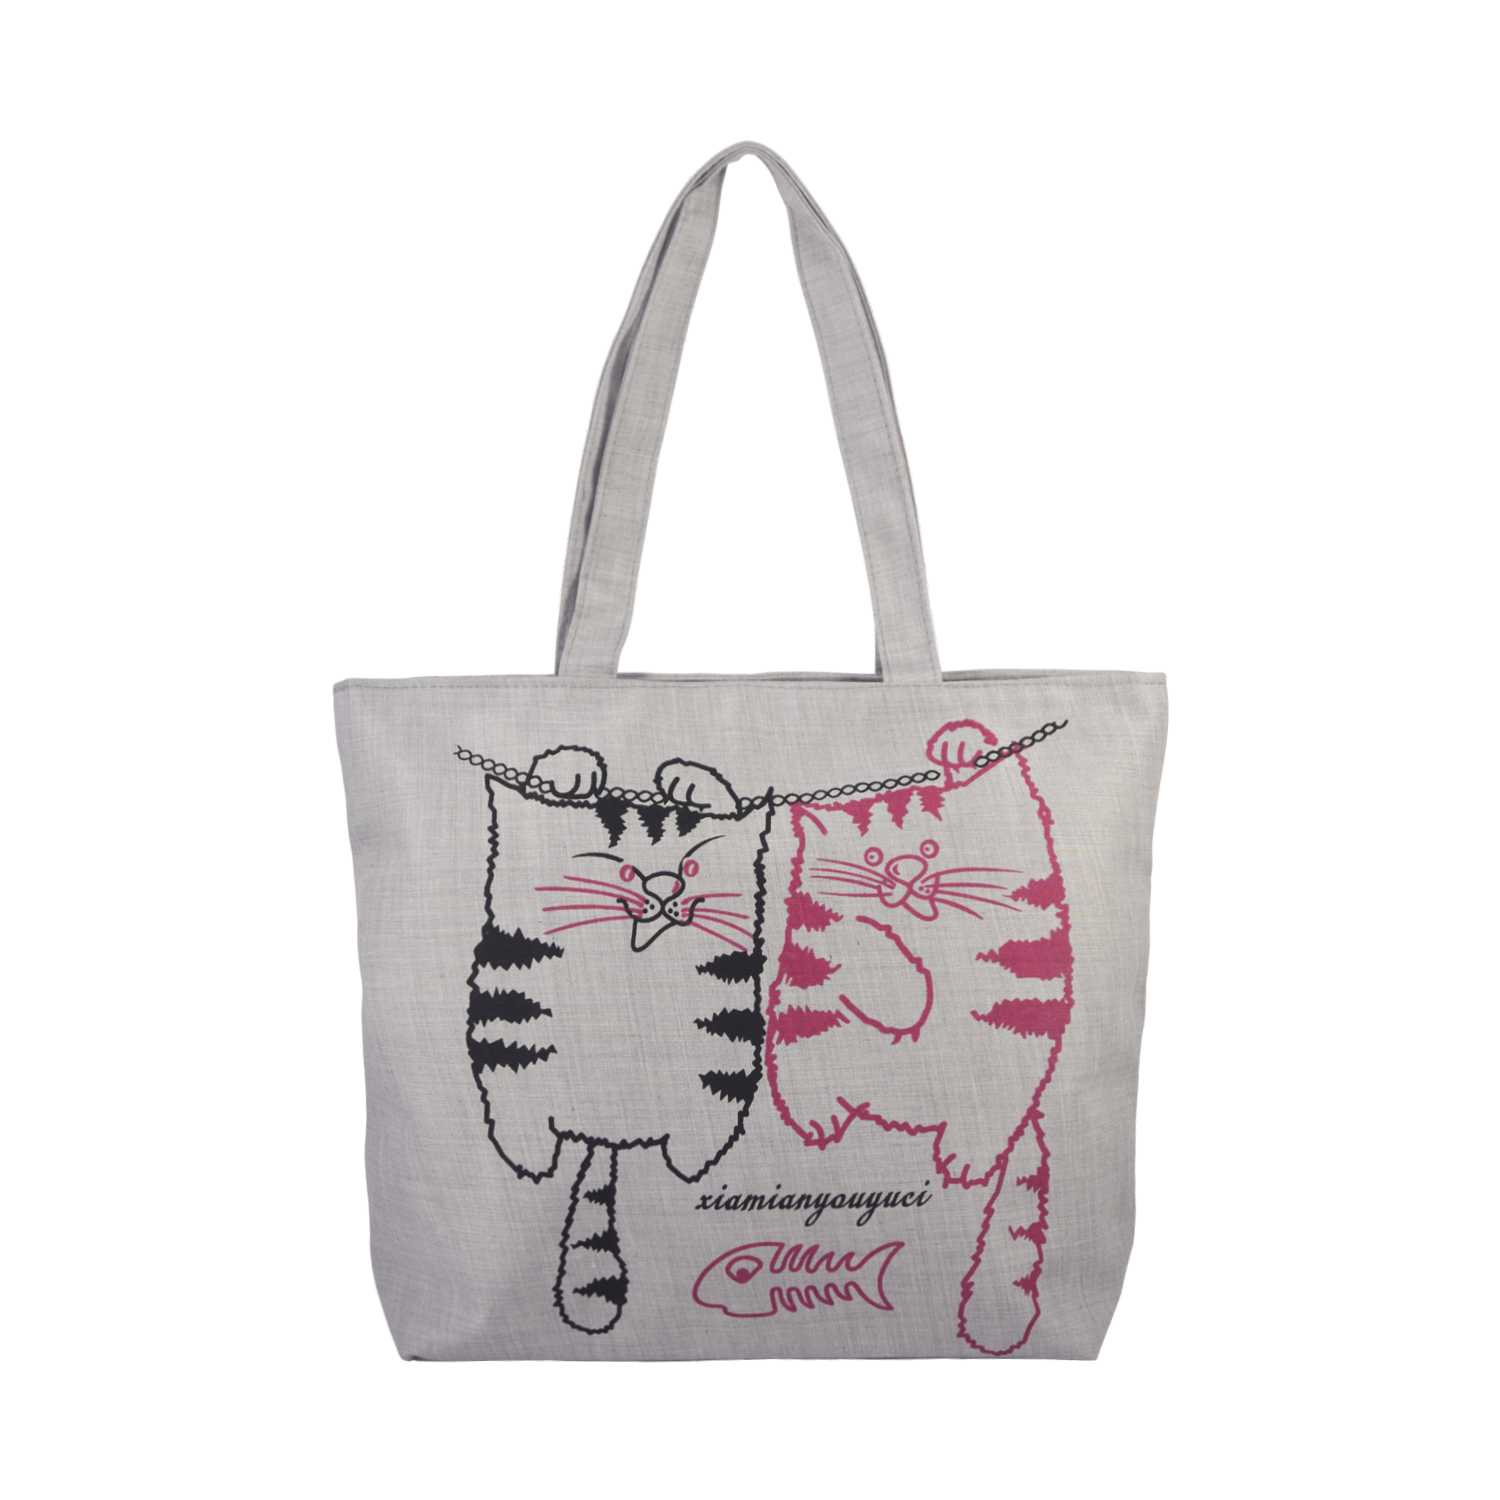 Two Kitties Illustration Canvas Tote Bag - Gray - Zestique